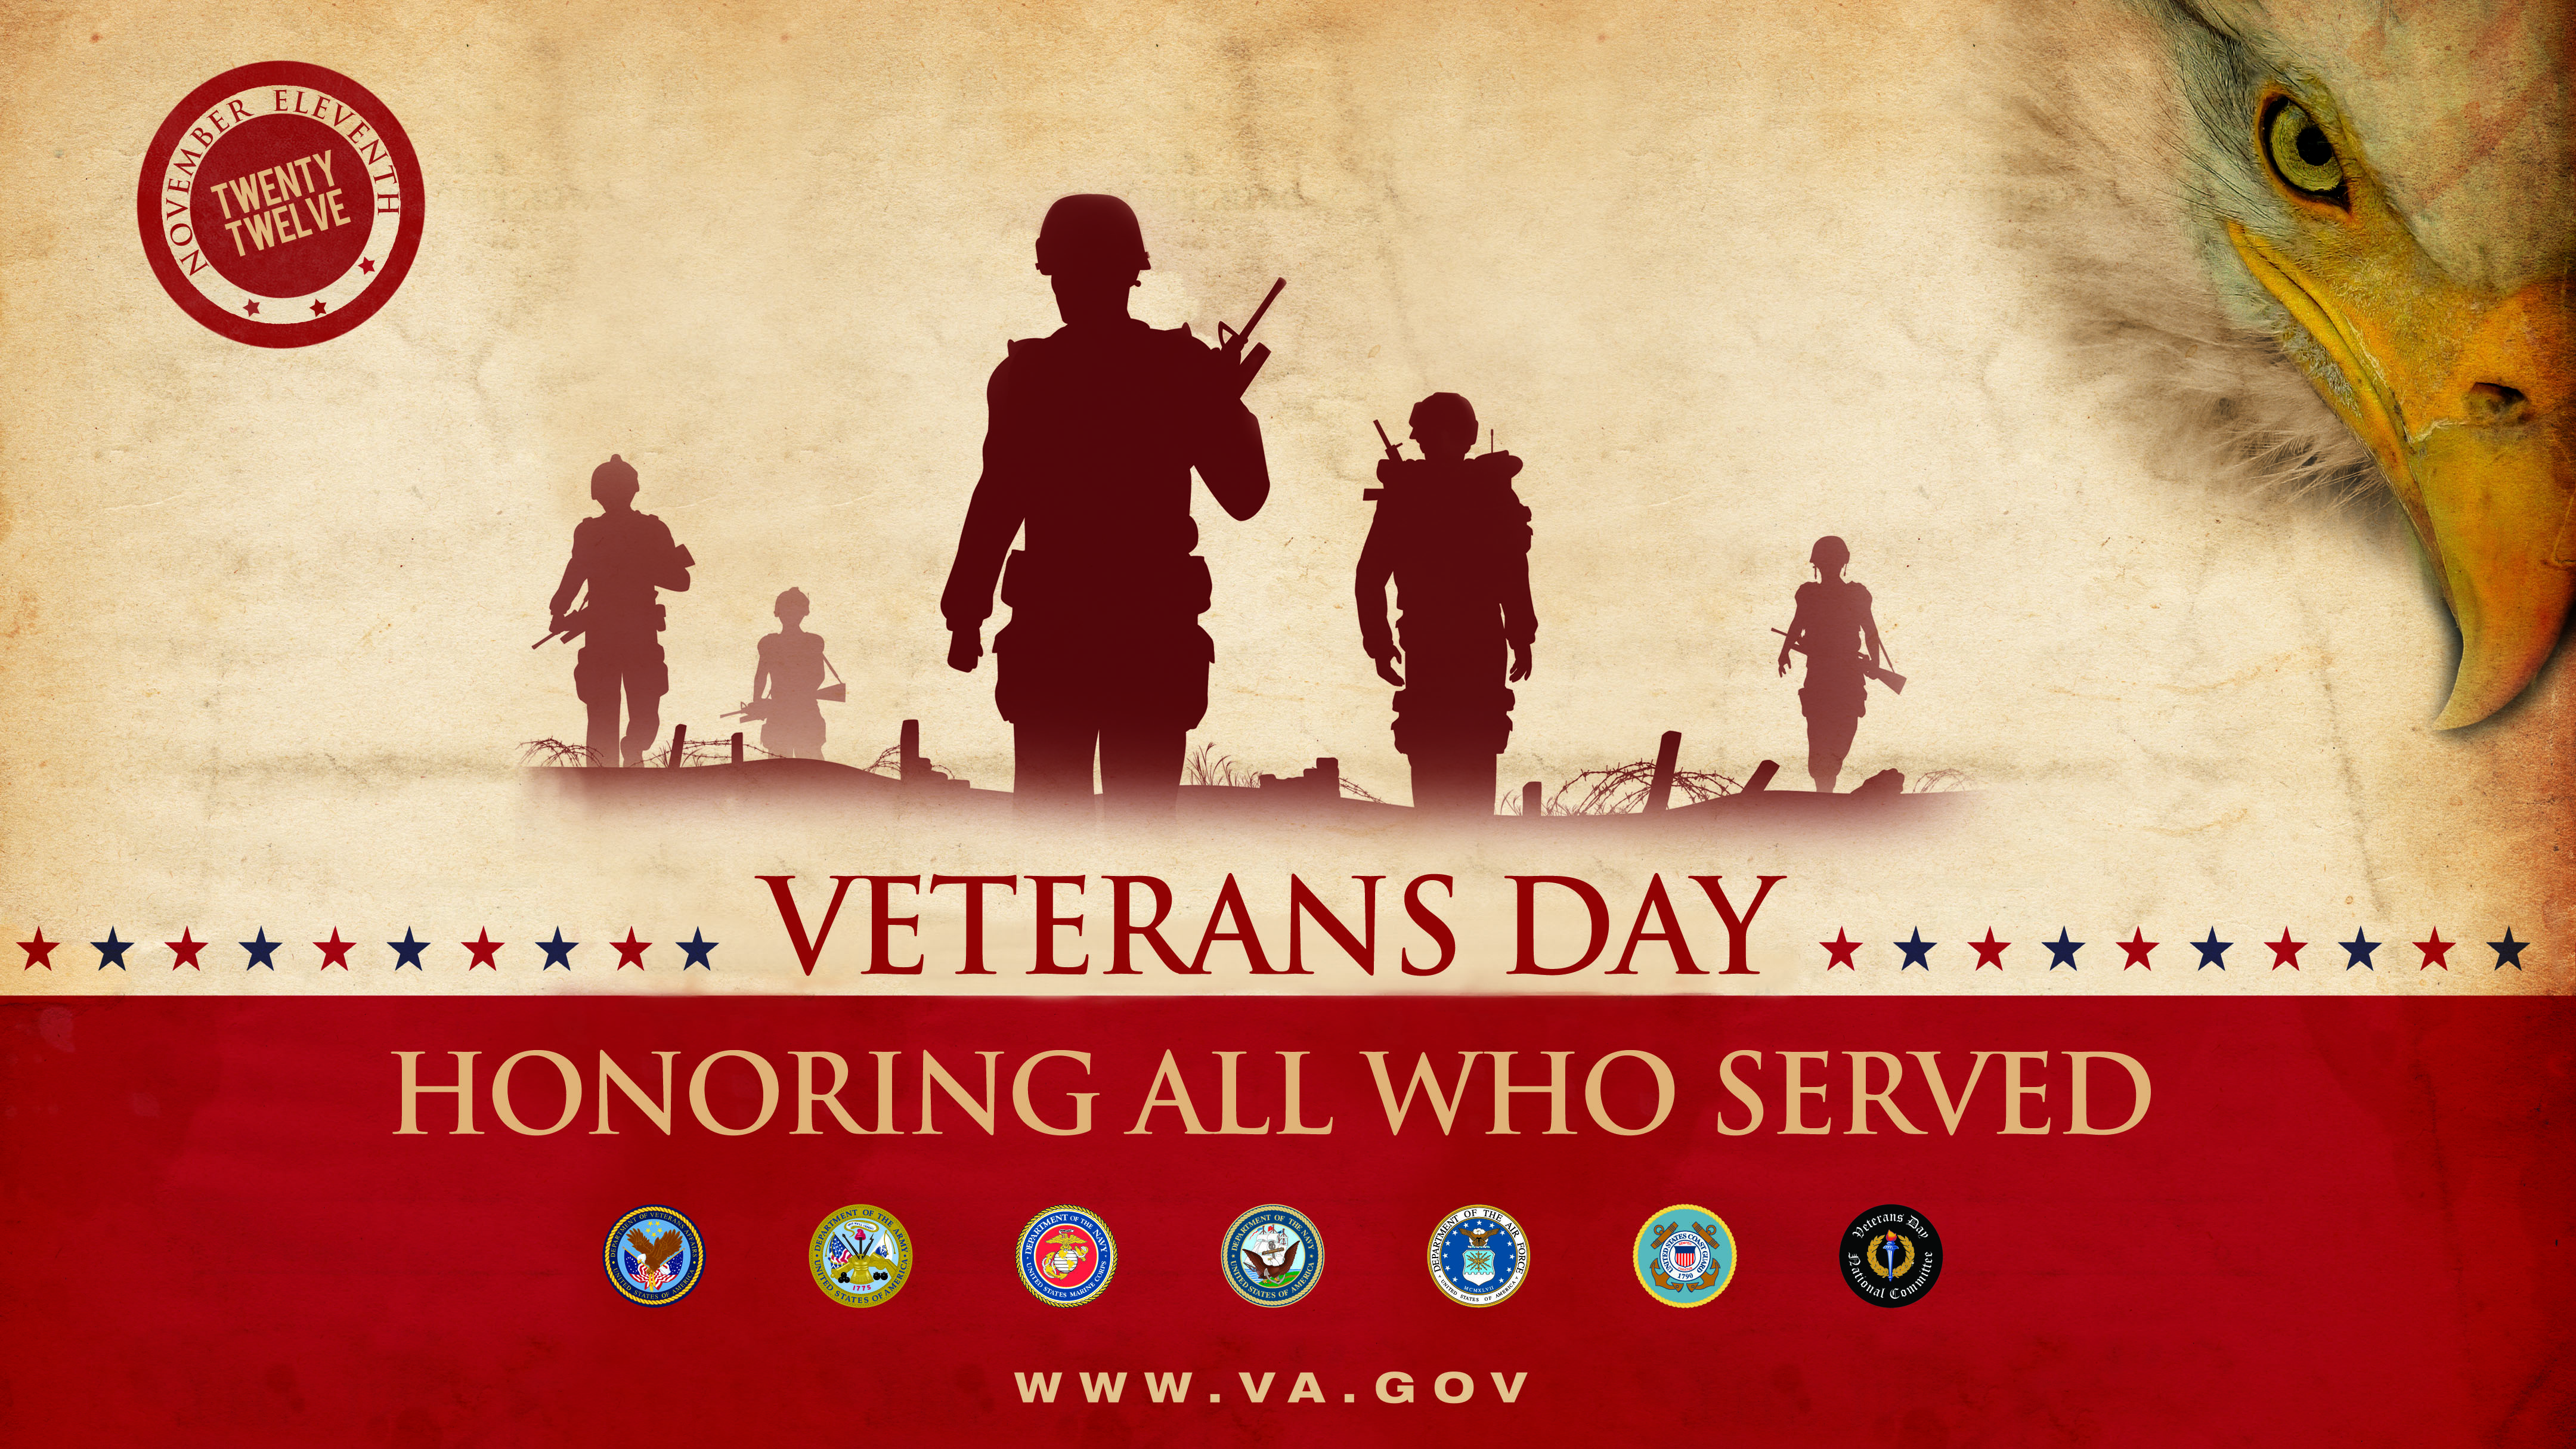 Veterans Day 4k Ultra HD Wallpaper And Background Image